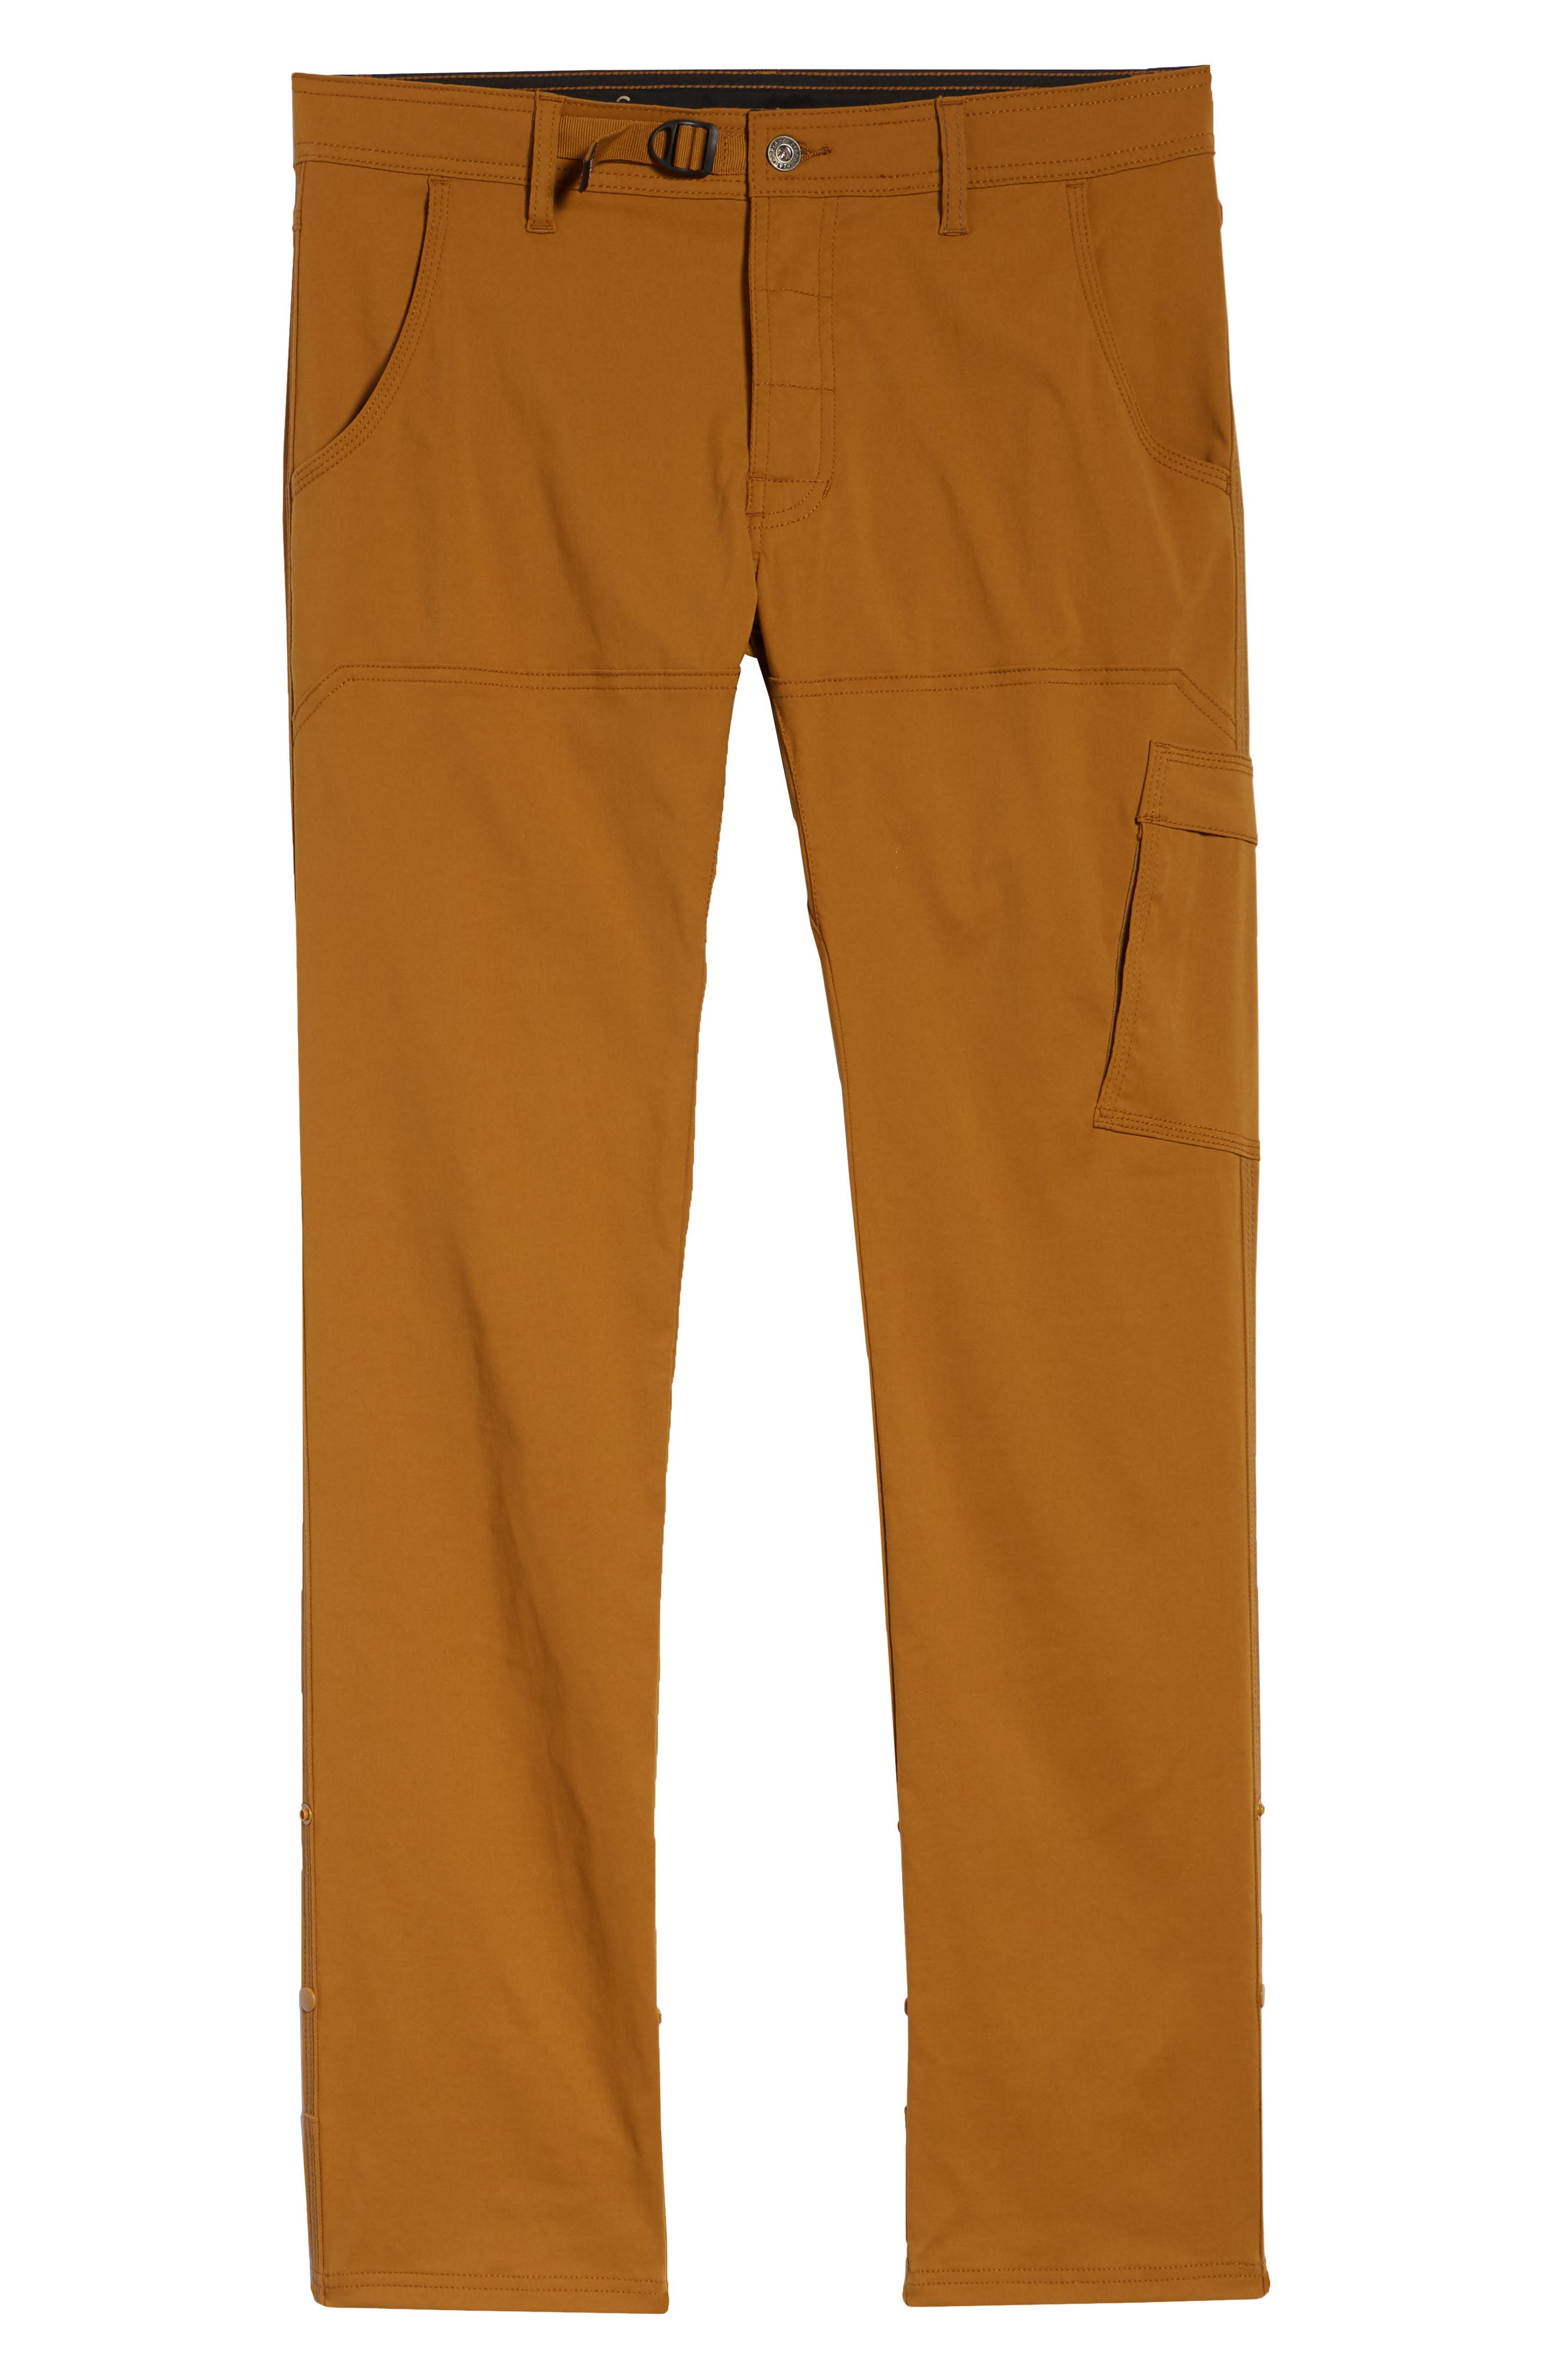 Stretch Zion Roll Pants,                             Alternate thumbnail 6, color,                             BRONZED